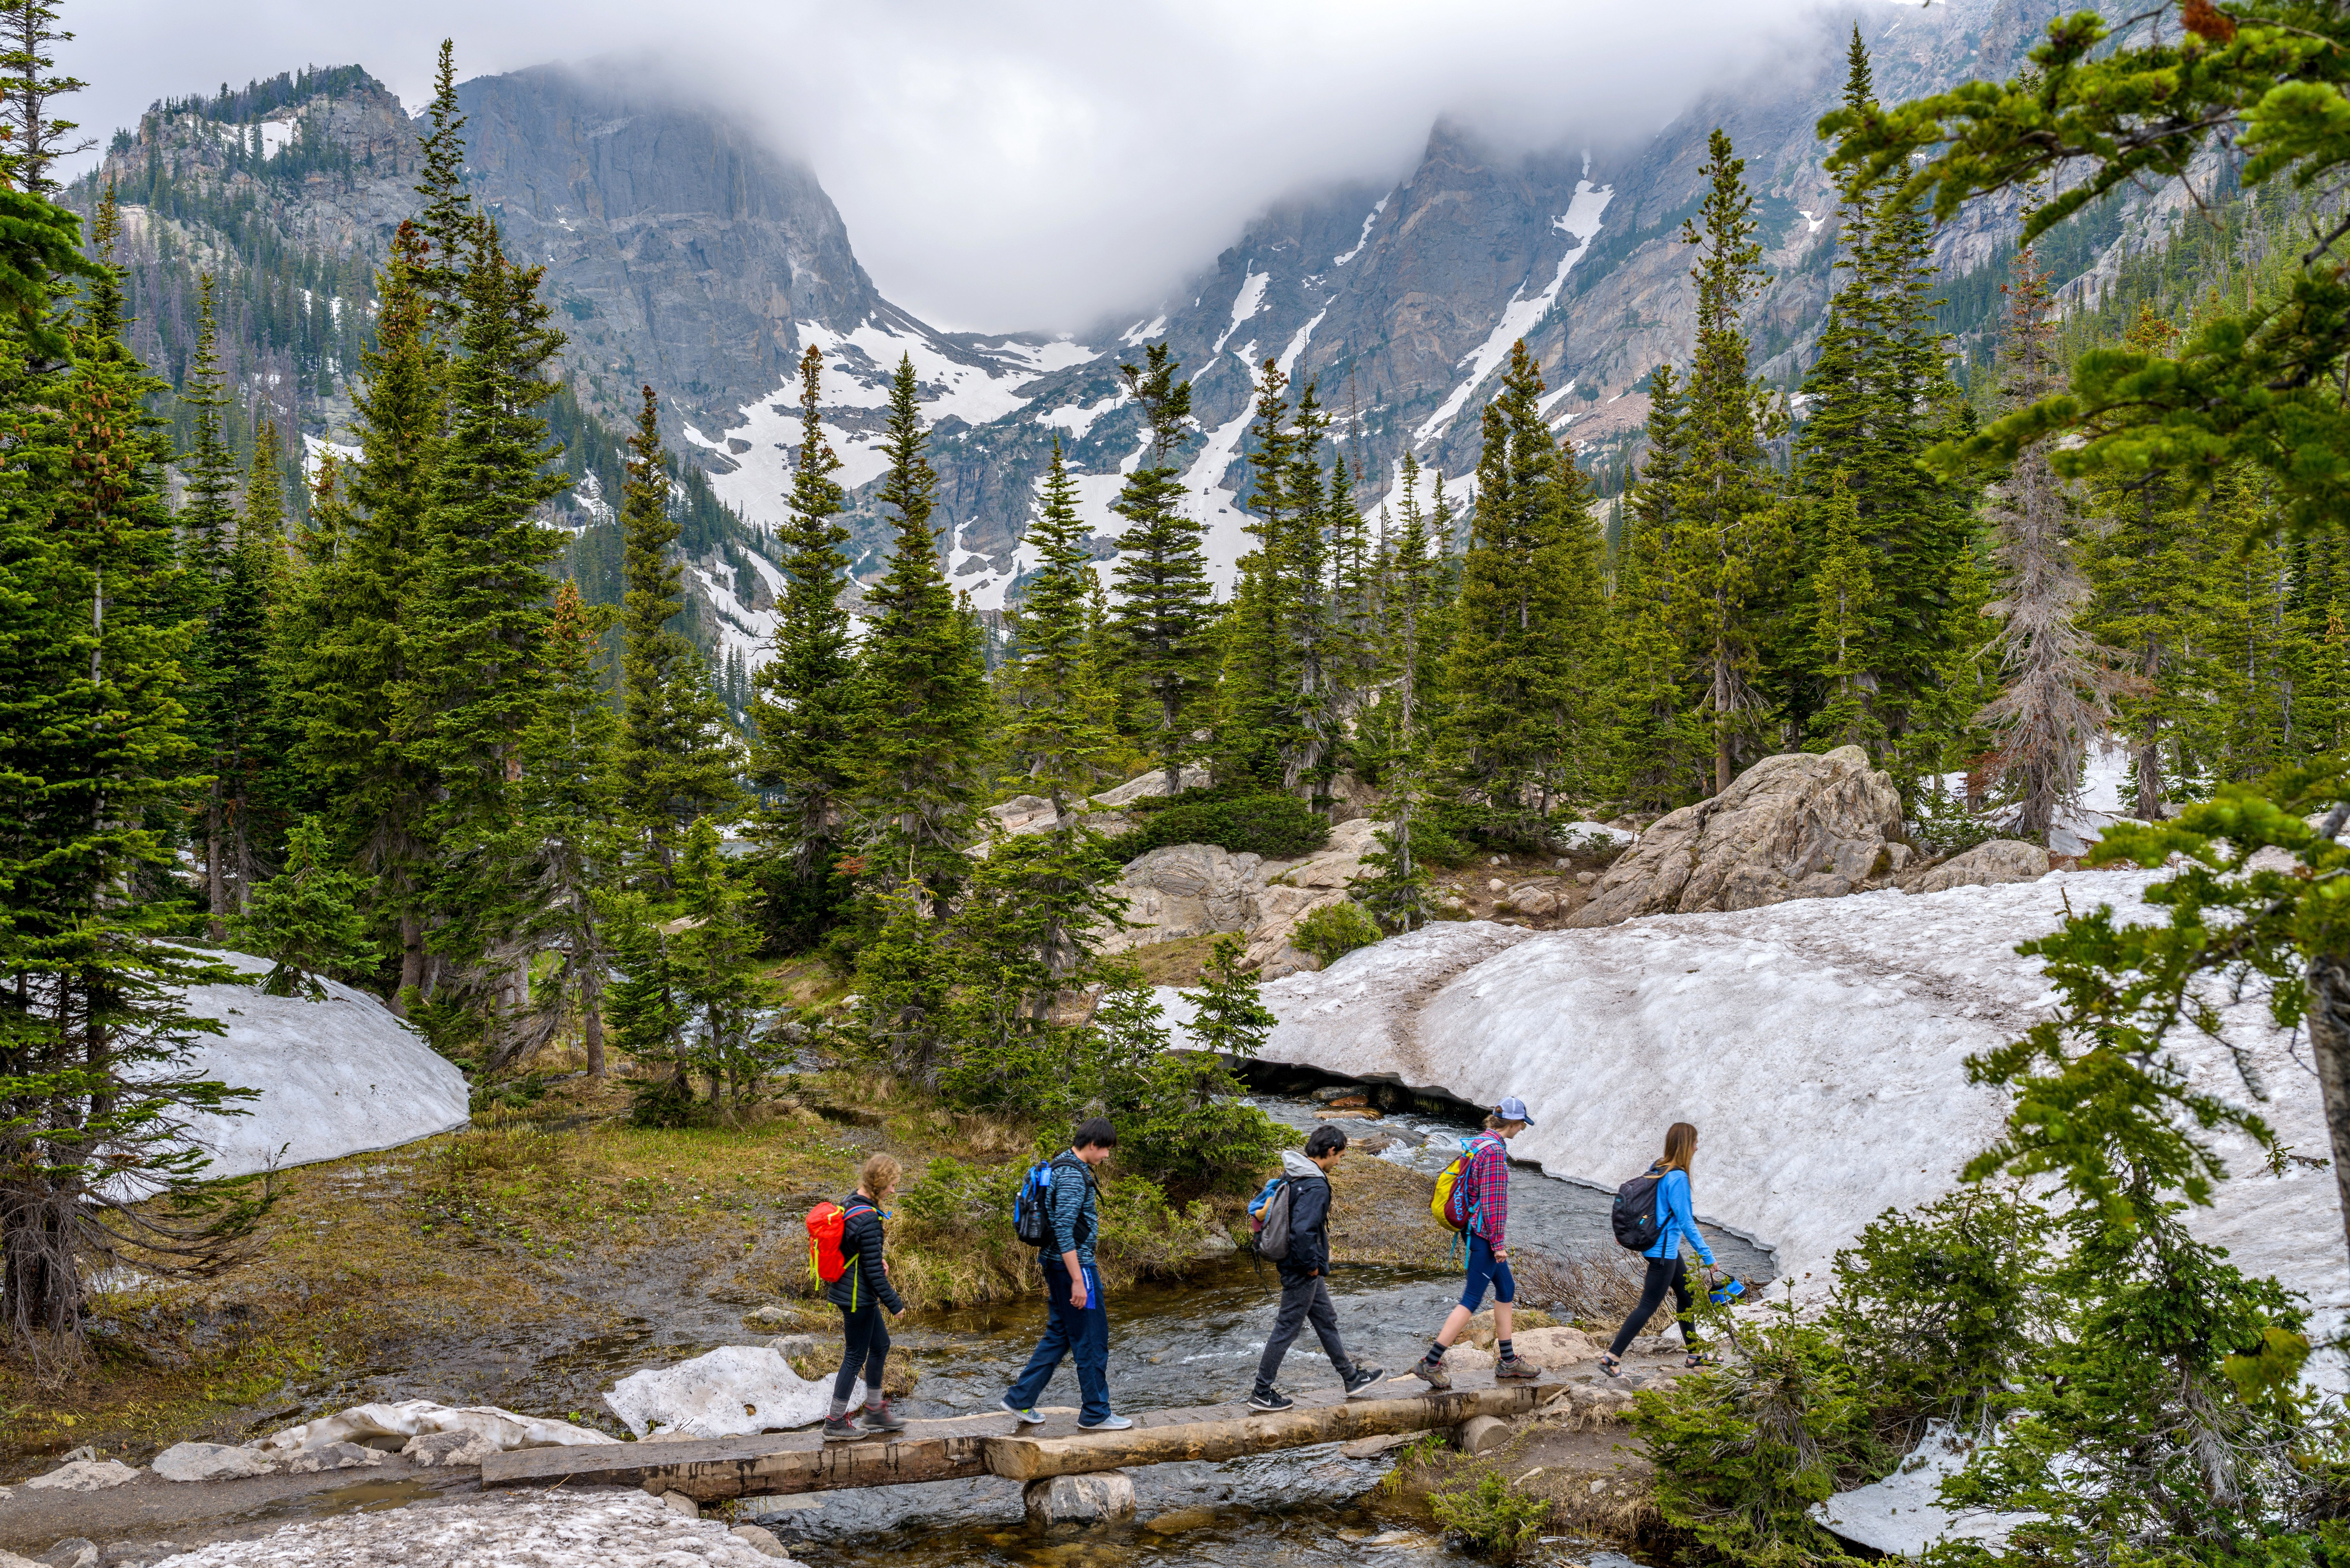 Estes Park, Colorado, USA - June 24, 2017: On a foggy spring day, a group of hikers walking cross a tree trunk bridge over Tyndall Creek on Emerald Lake Trail at base of Hallett Peak and Flattop Mountain in Rocky Mountain National Park.